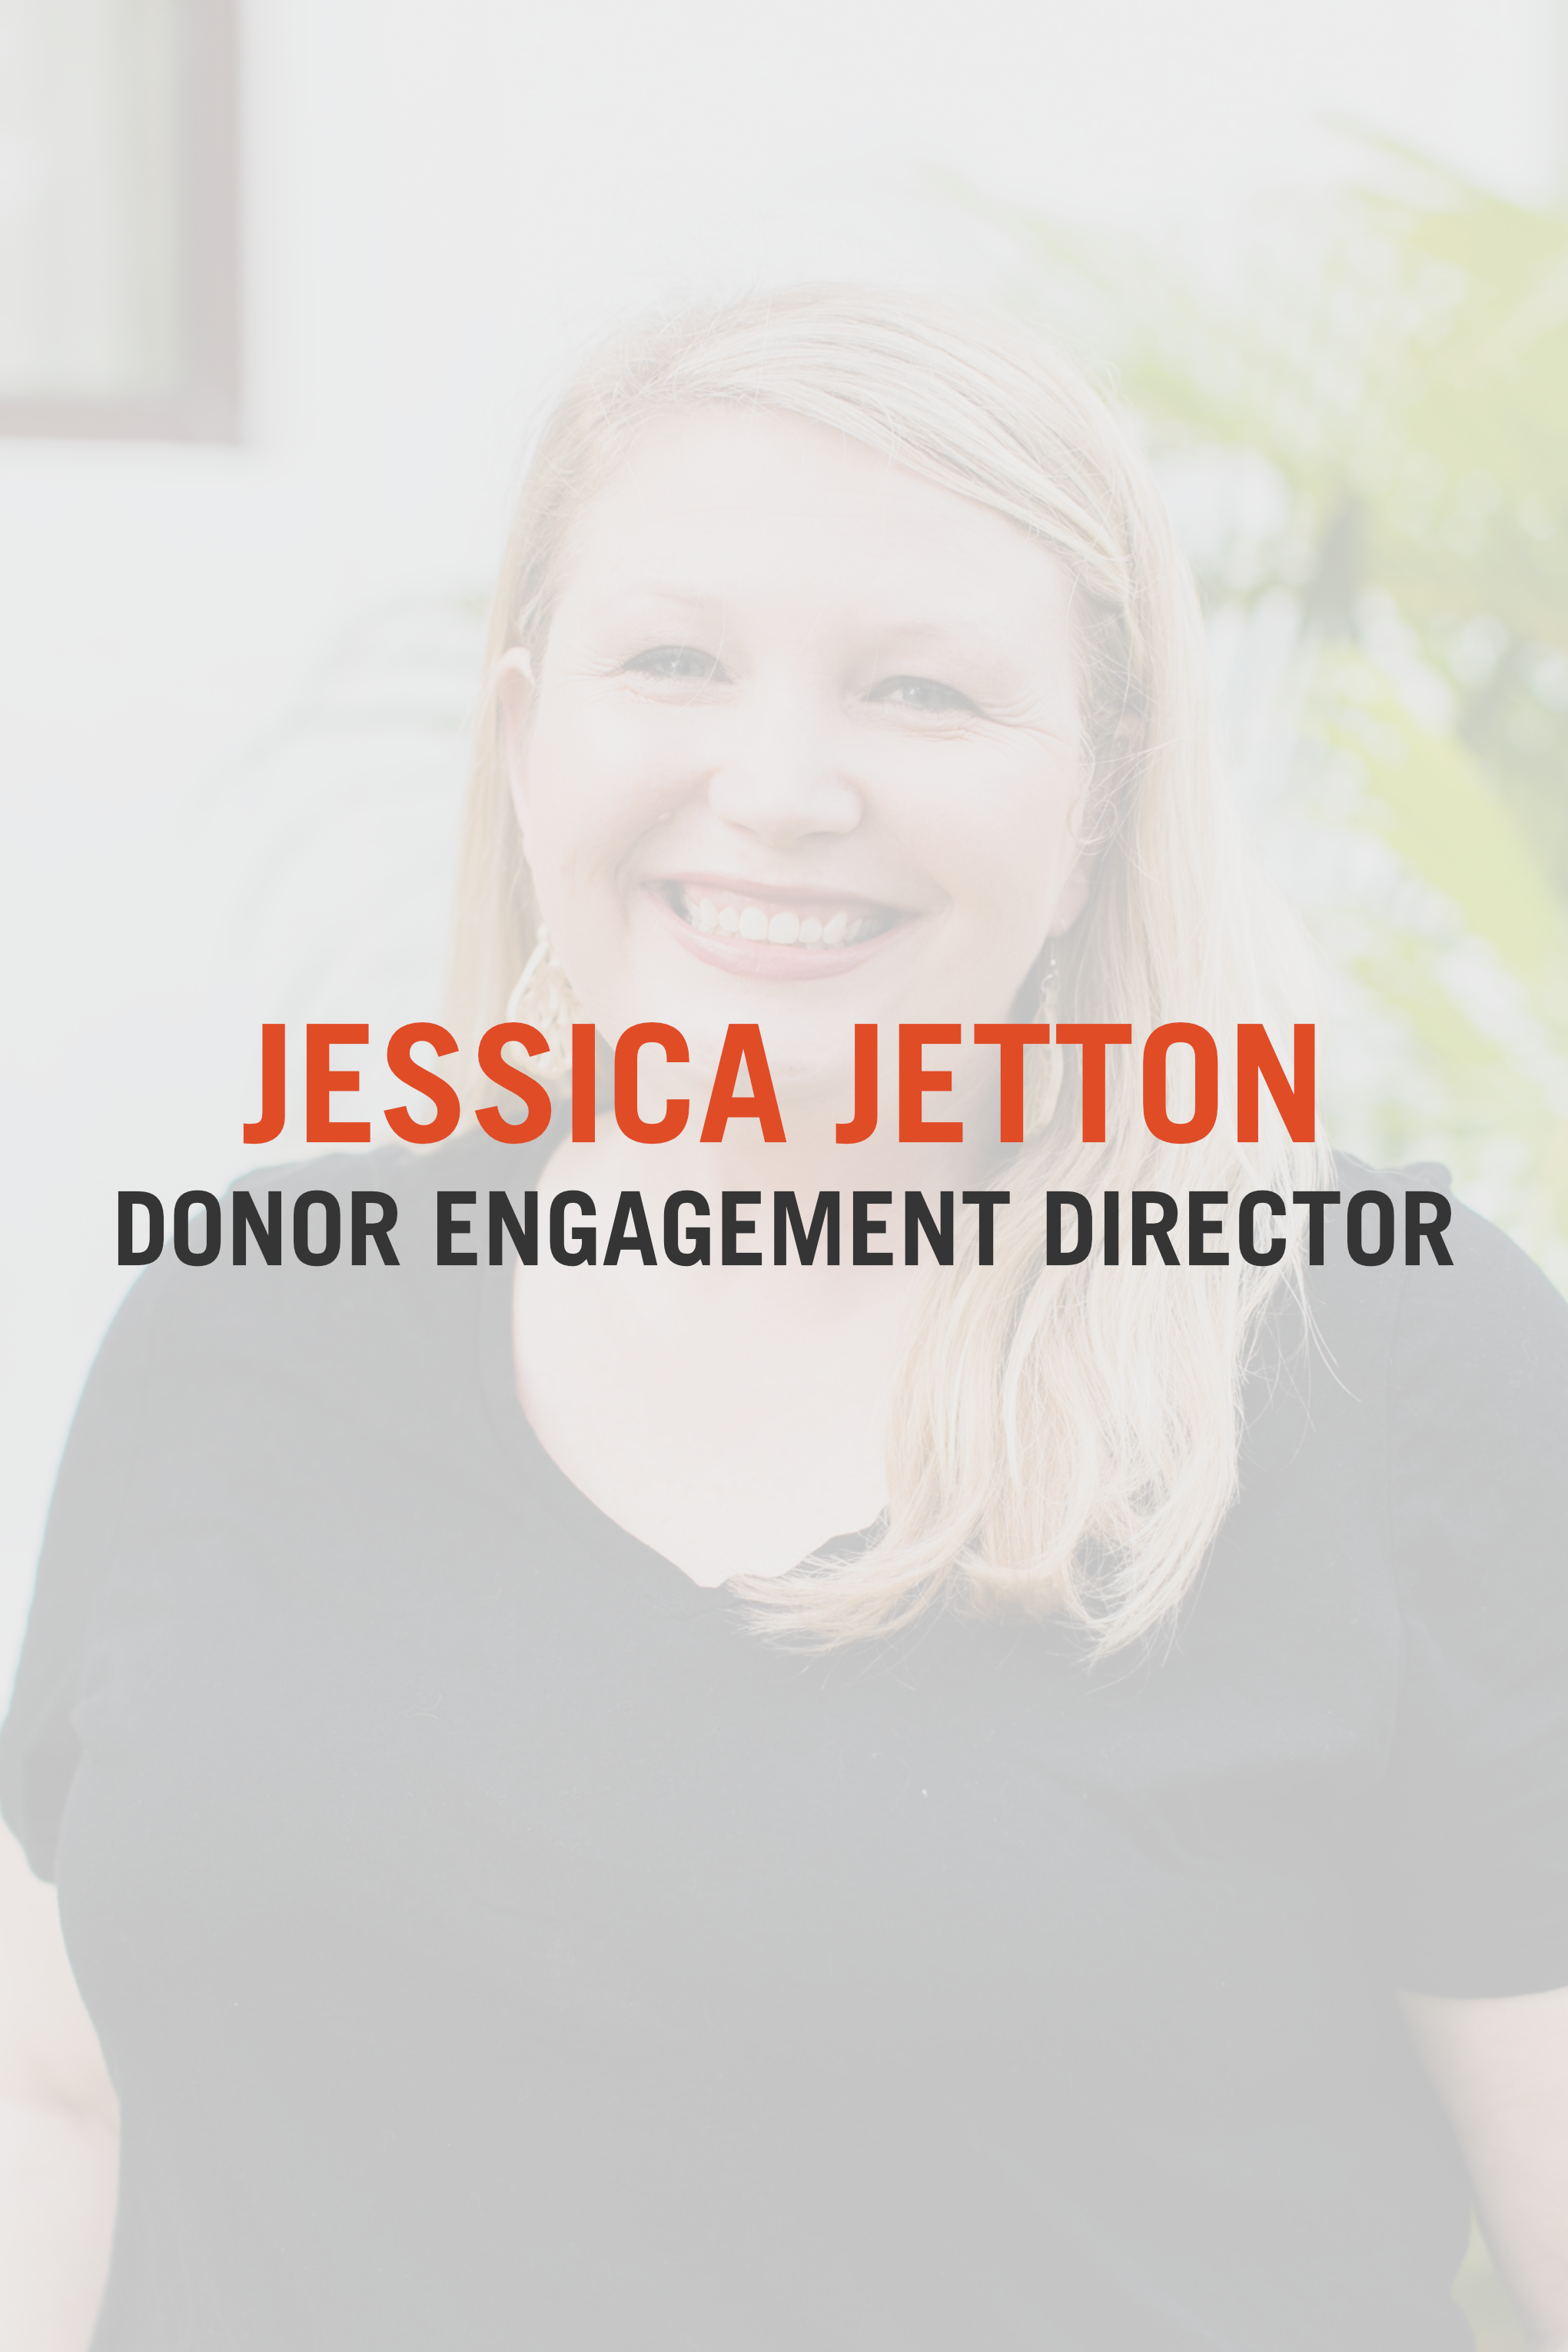 JESSICA JETTON TITLE.png